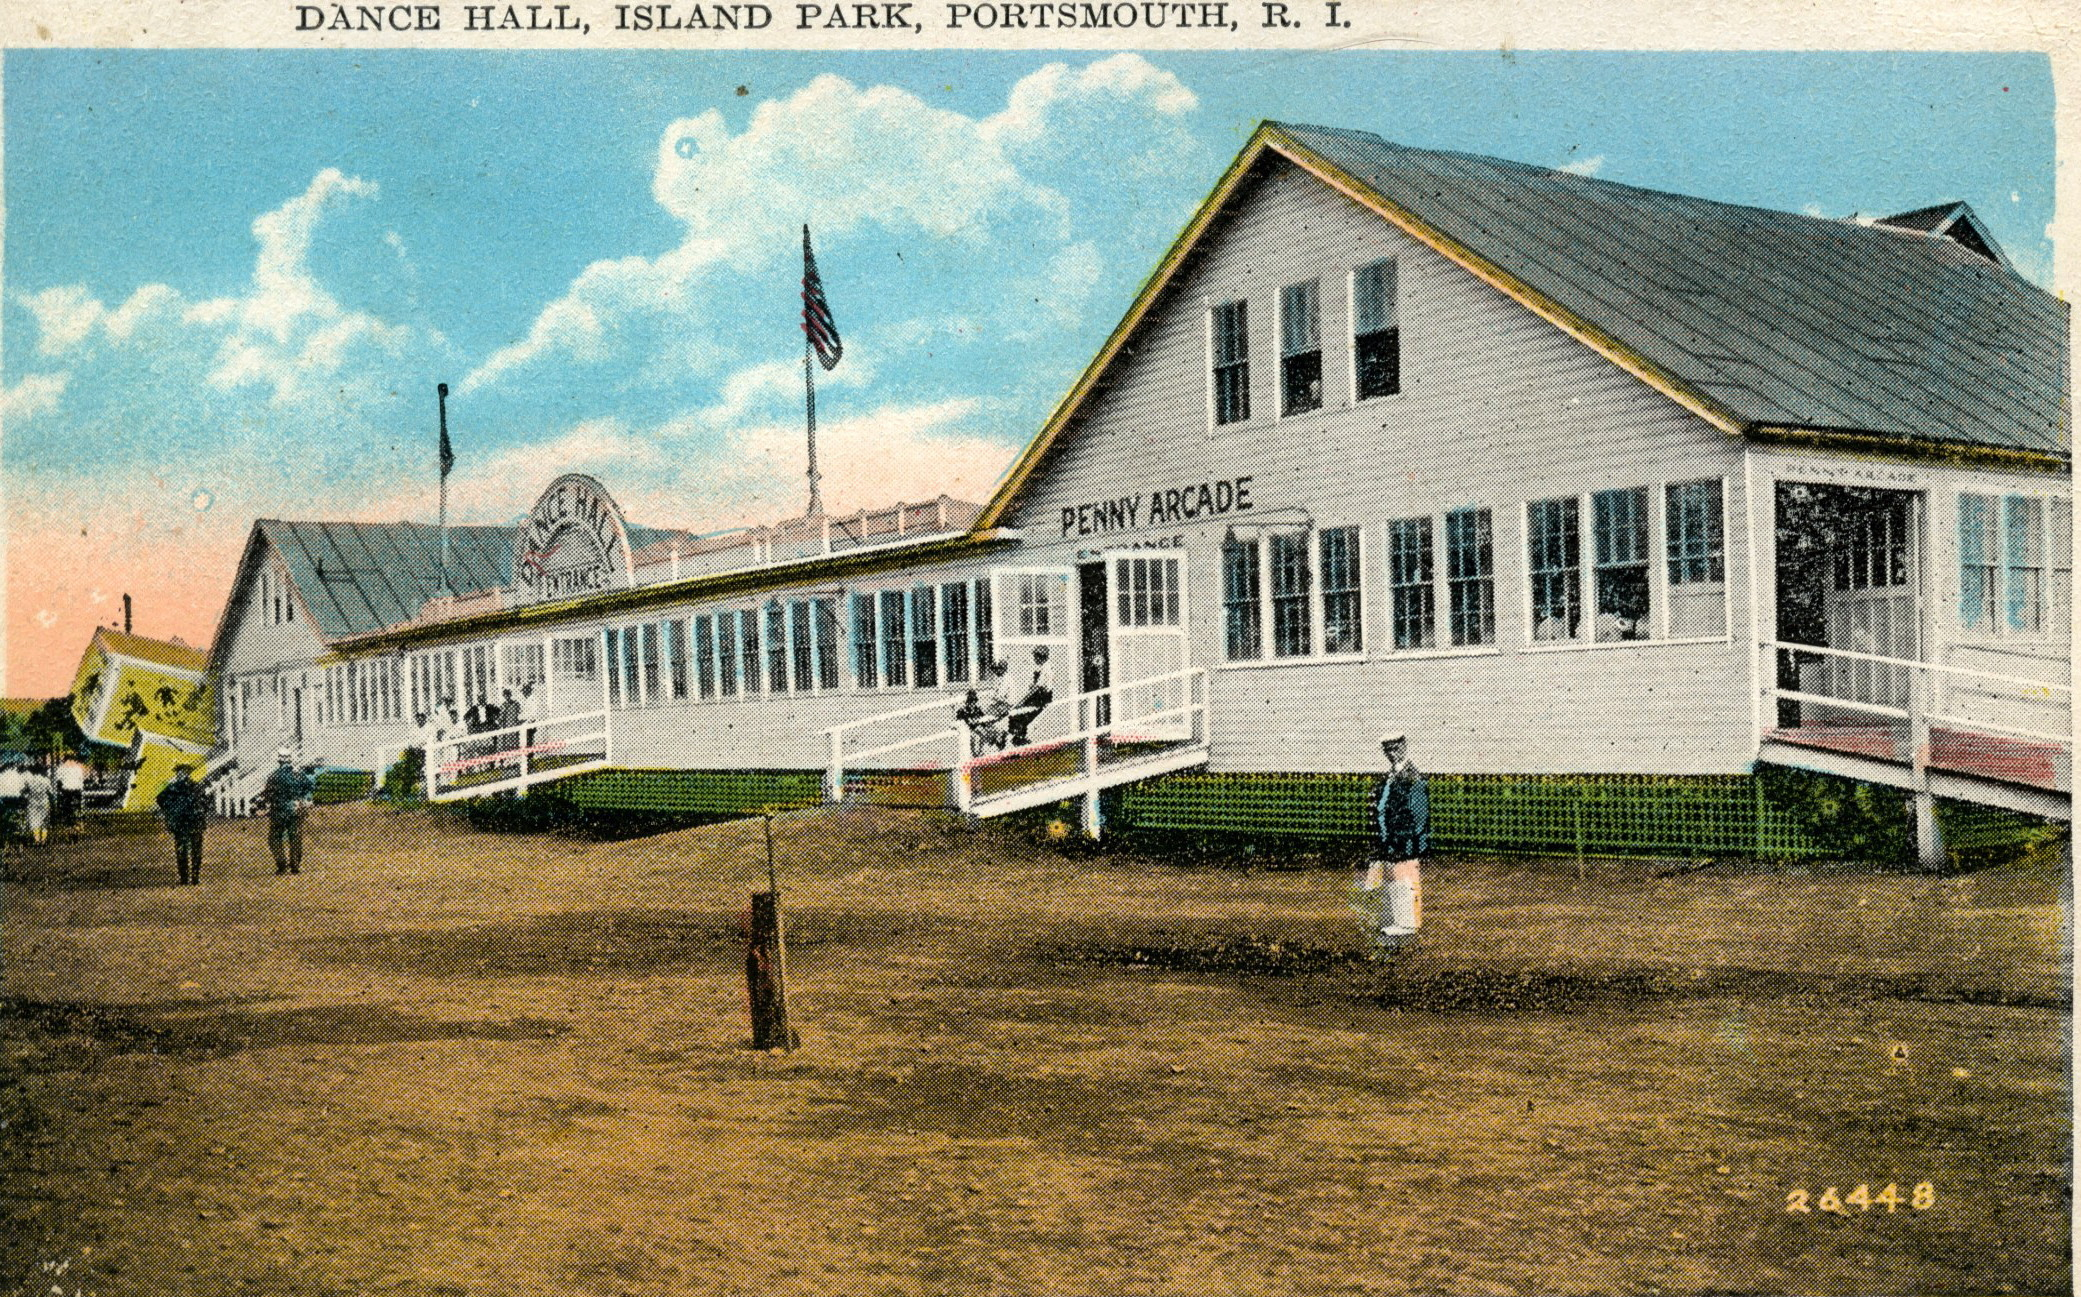 This Colorized Postcard Of The Island Park Amusement Parks Dance Hall Is From Jim Garmans Collection